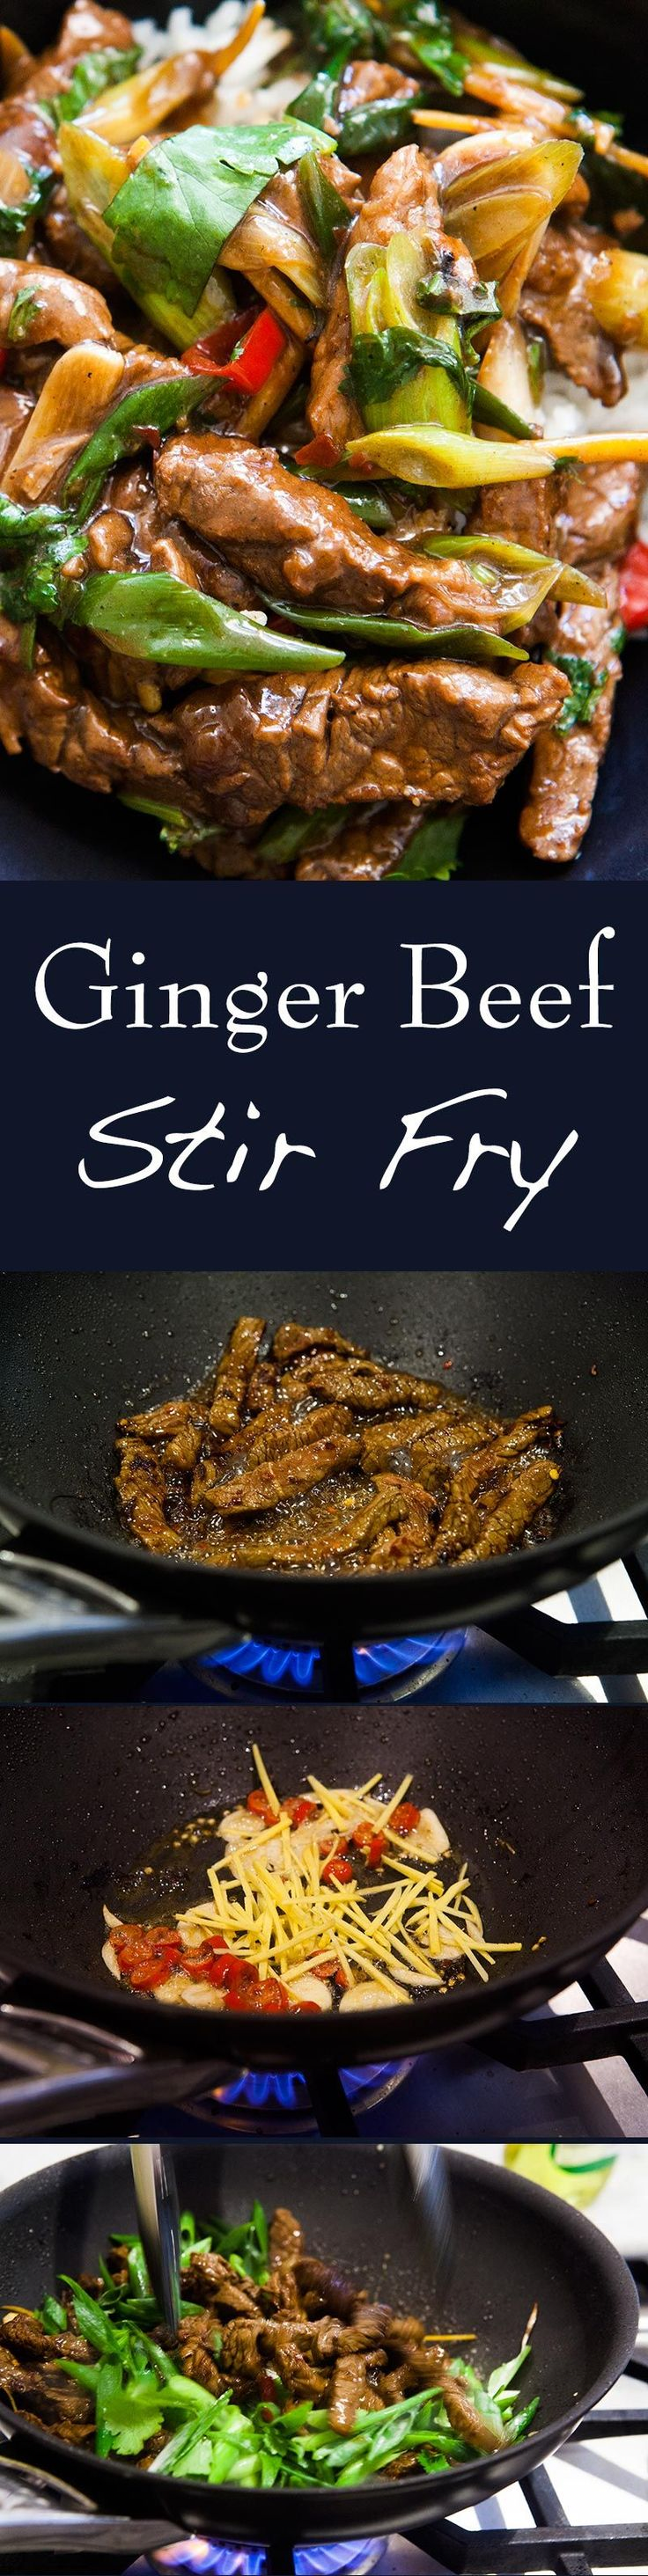 #ChineseNewYear Easy Beef Stir Fry! With ginger and scallions and a honey soy marinade. Cooks up in minutes! On SimplyRecipes.com